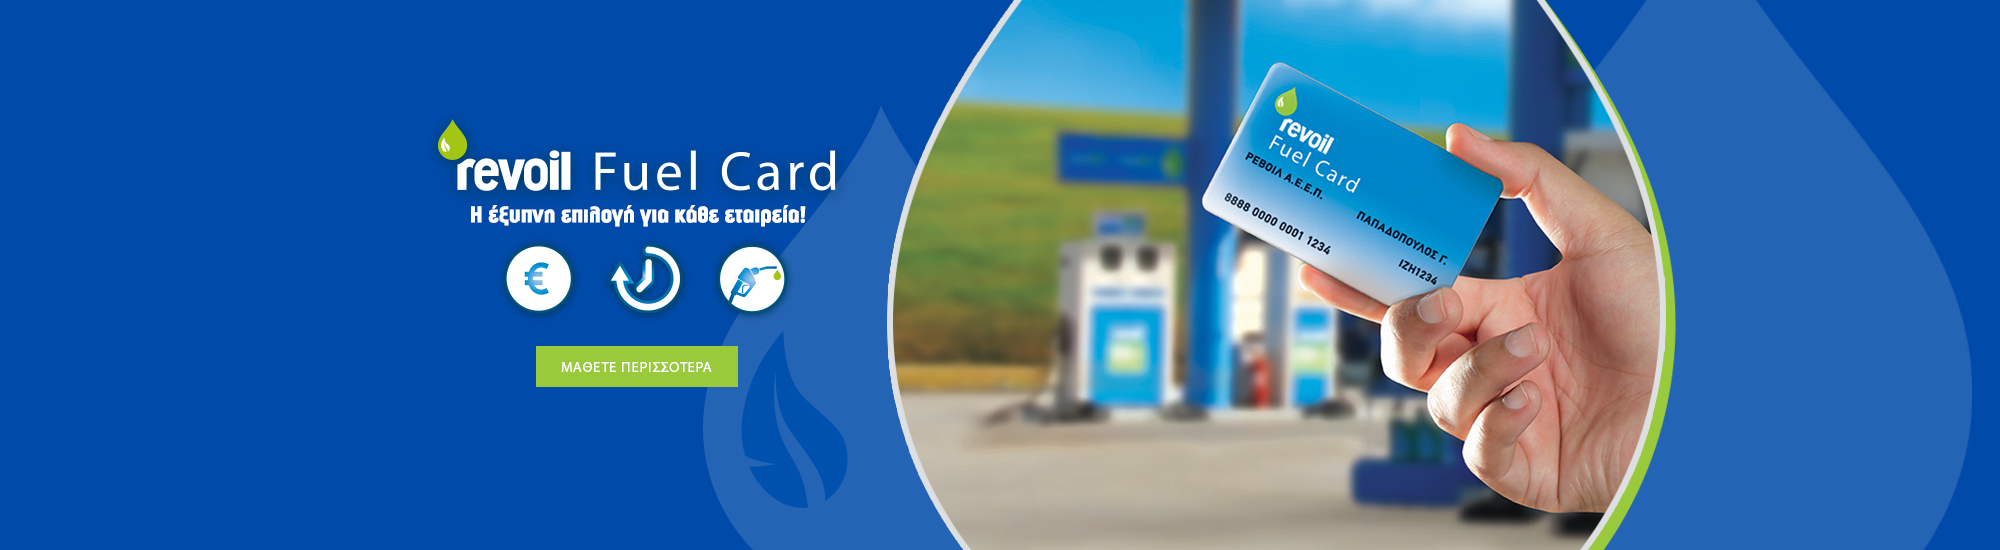 Revoil Fuel Card